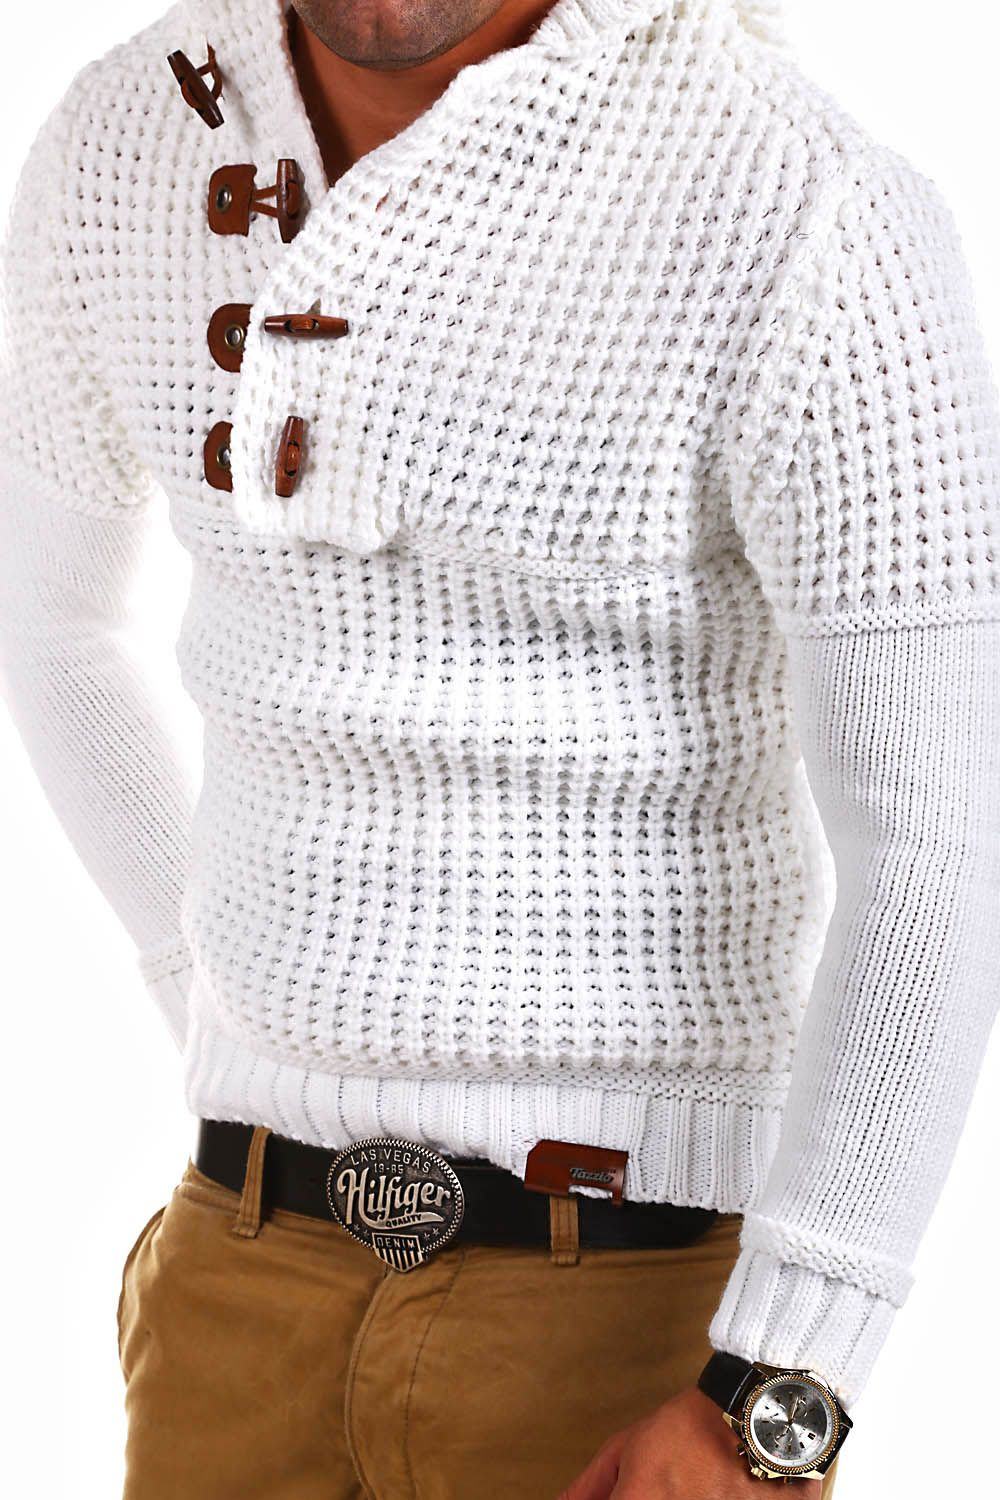 Details about TAZZIO Strick Pullover Hoodie Grobstrick